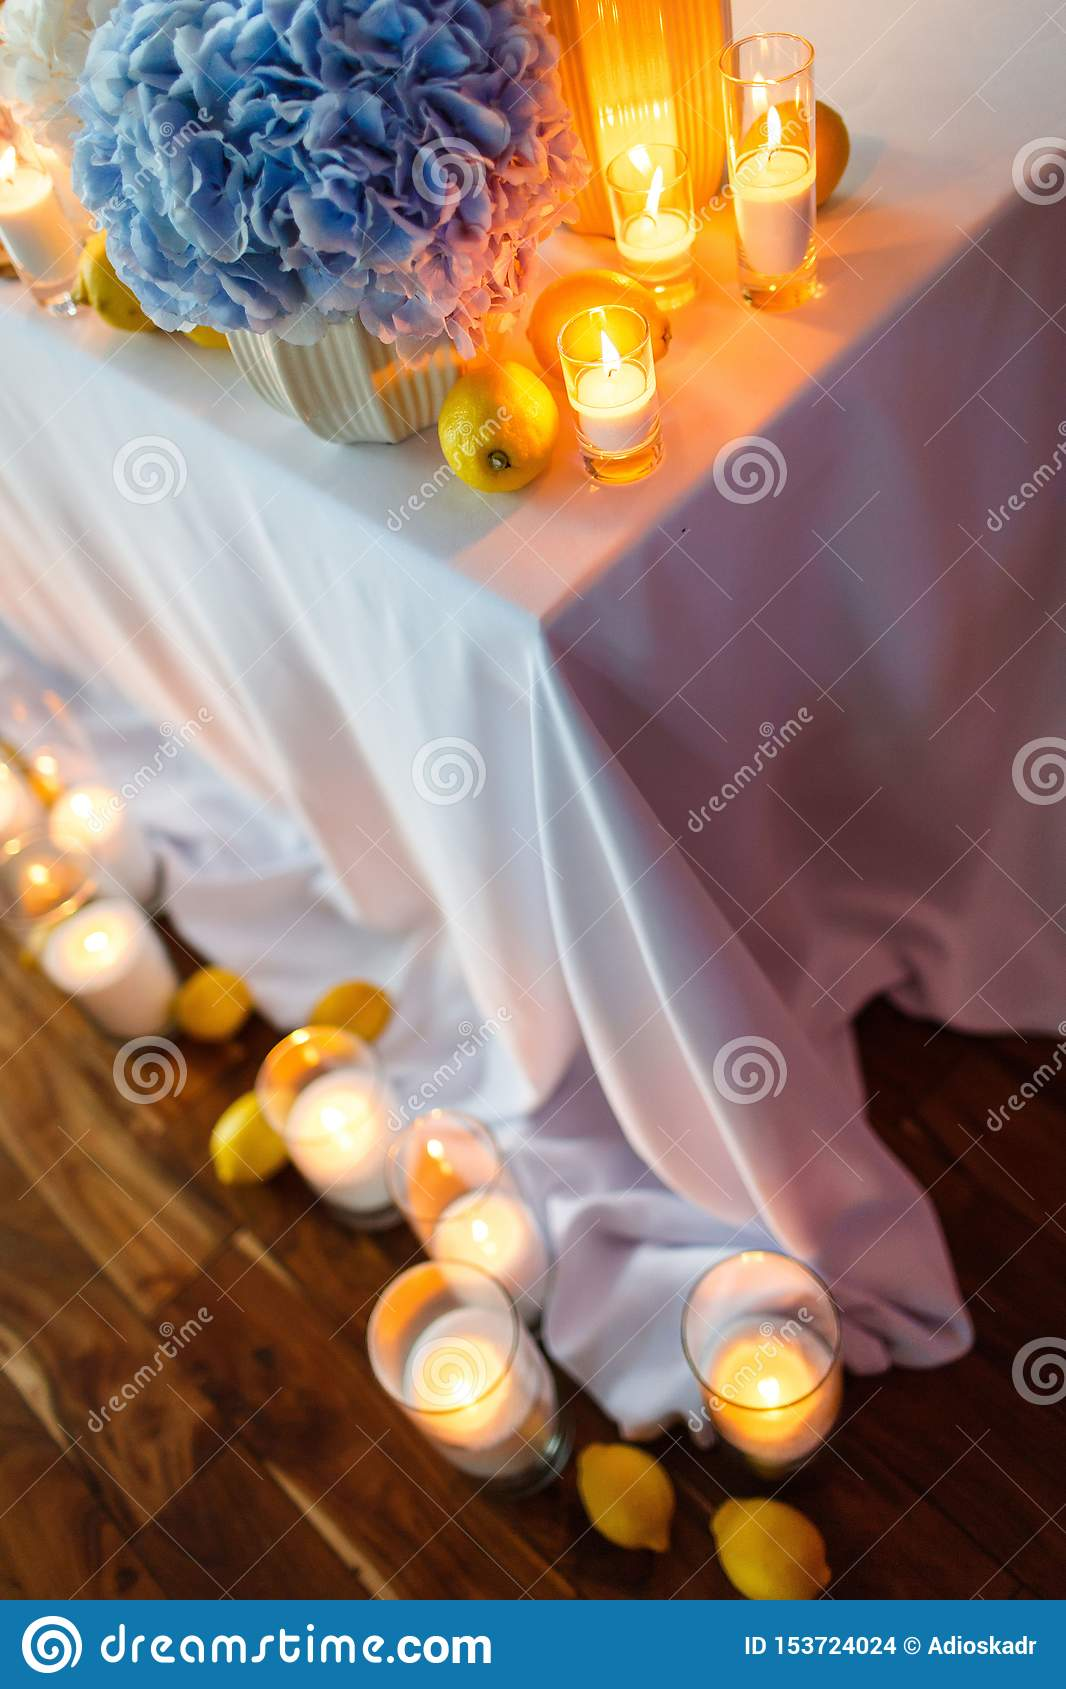 Wedding table decoration with candles and blue flowers